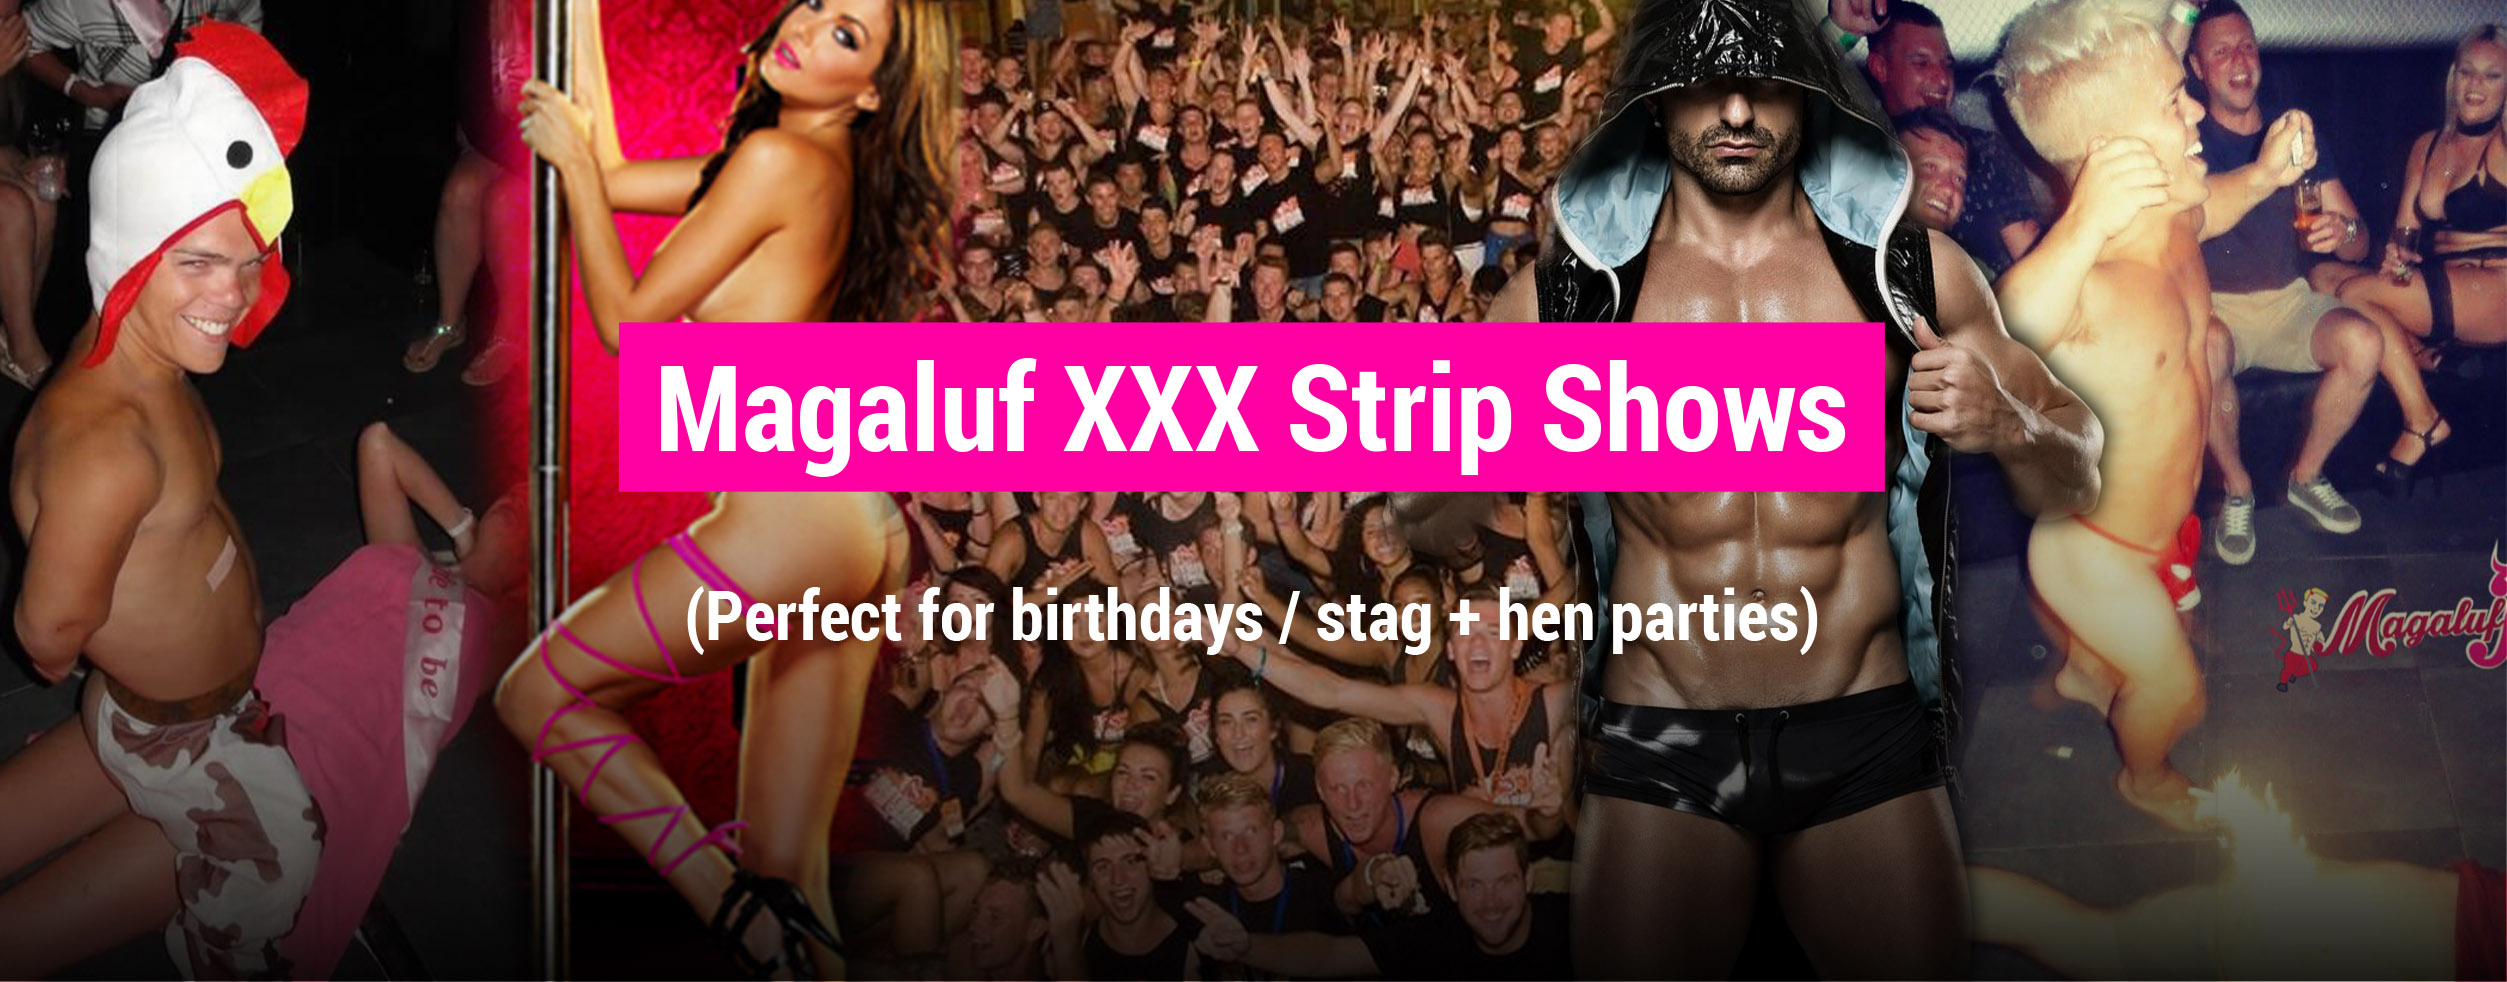 Magaluf XXX Strip Shows